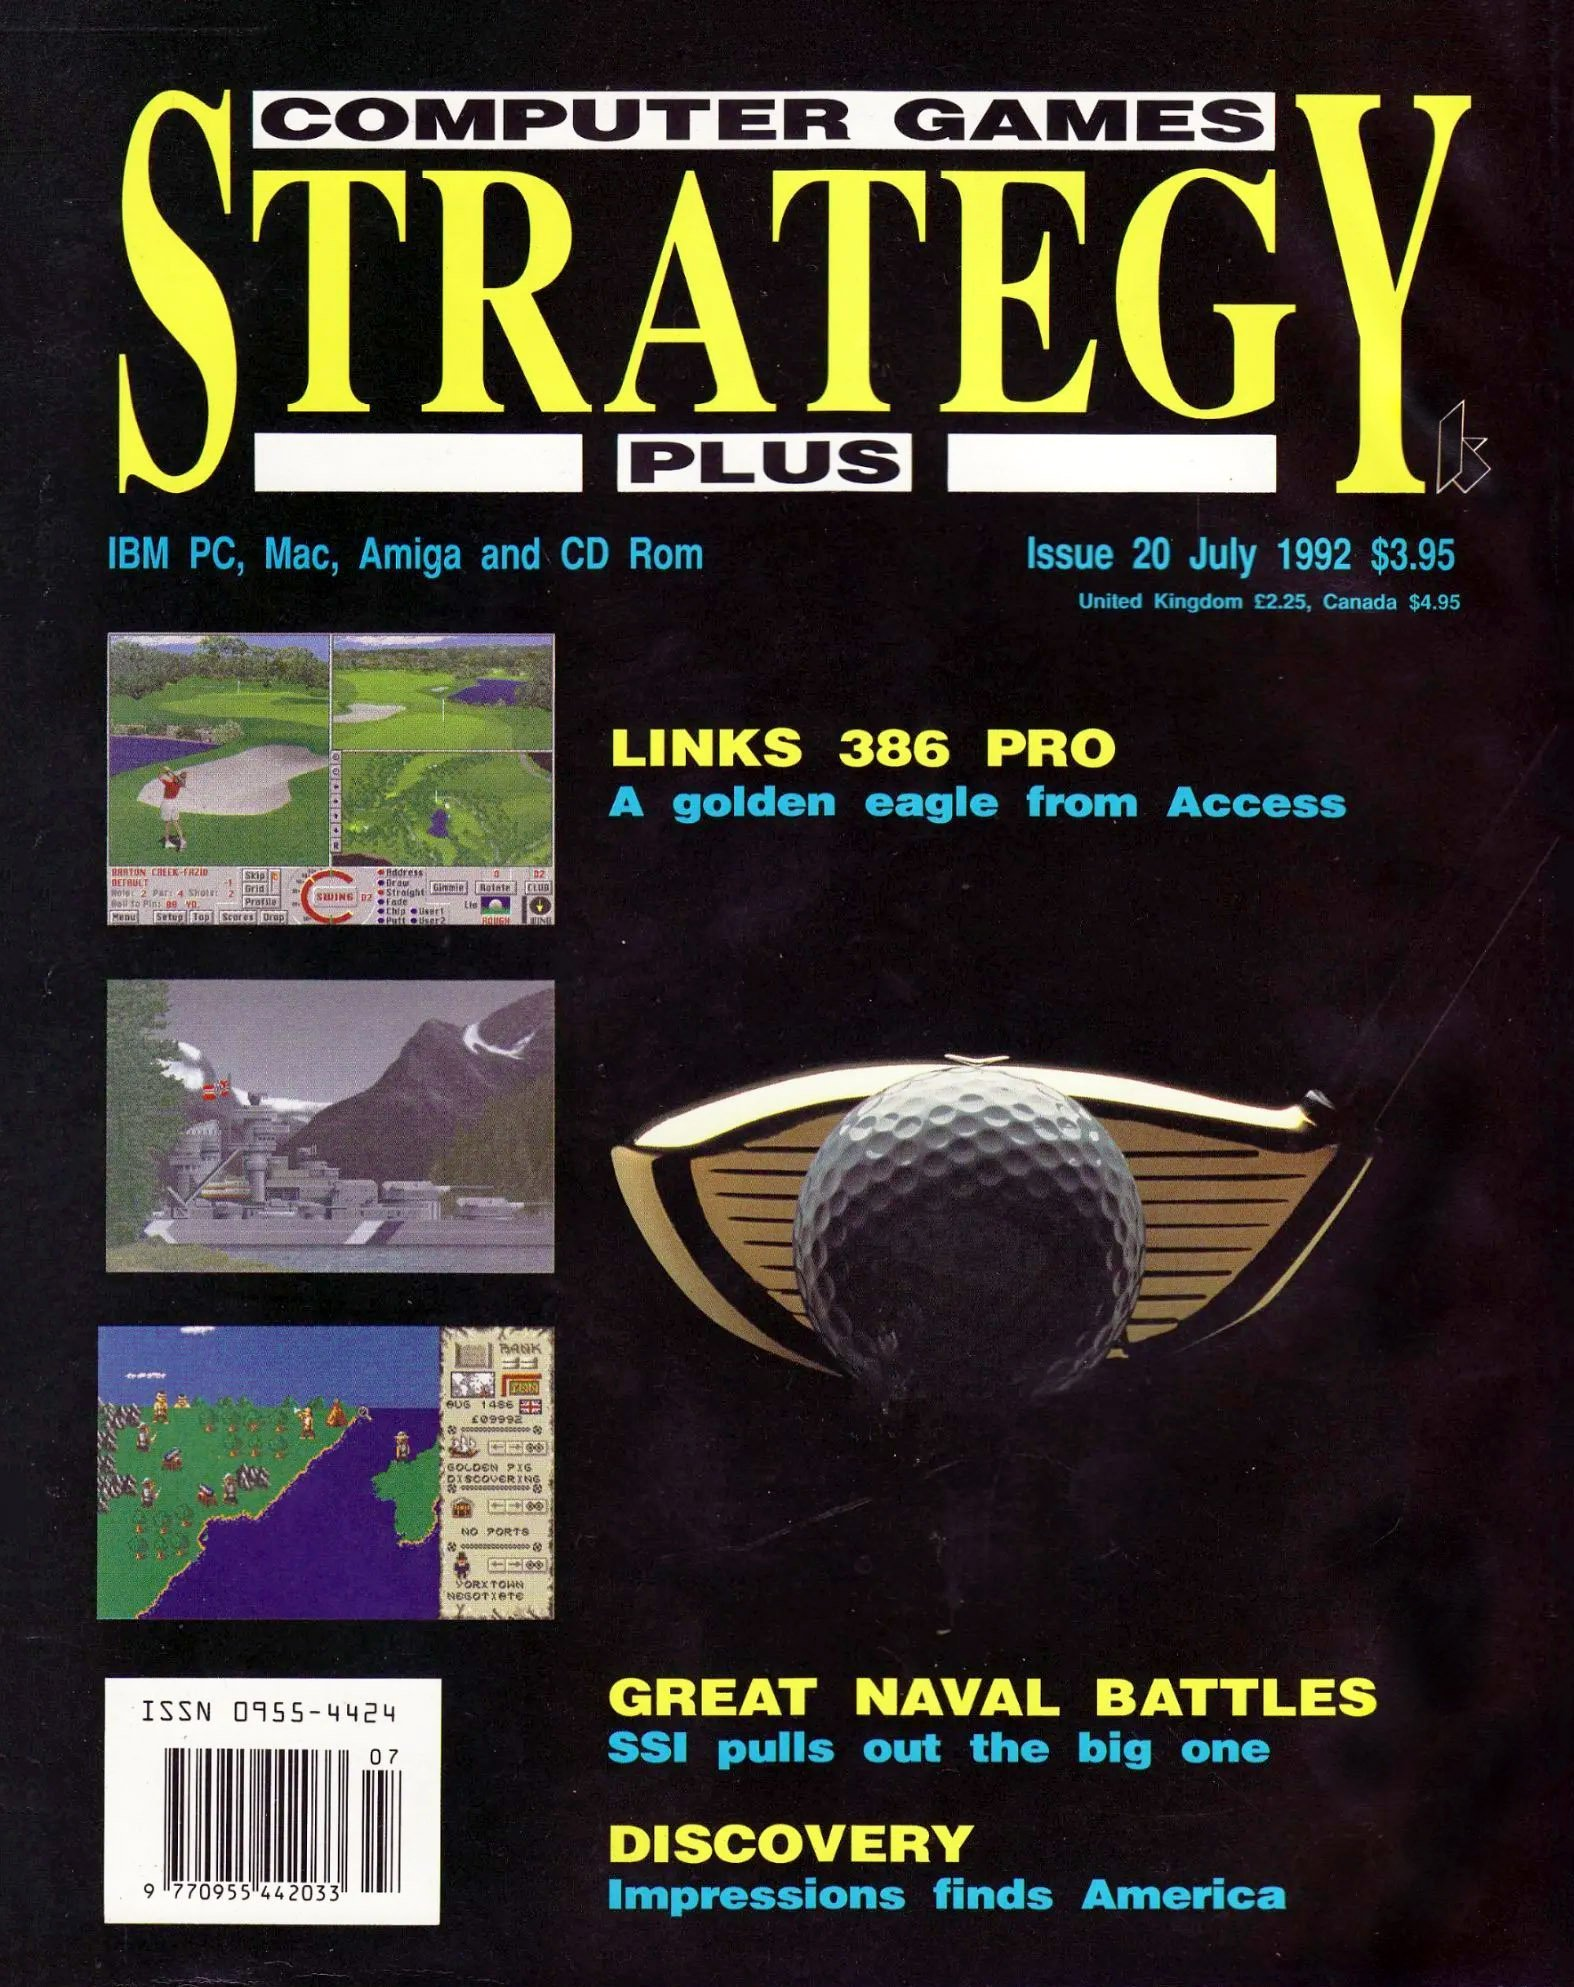 Computer Games Strategy Plus Issue 020 (July 1992)